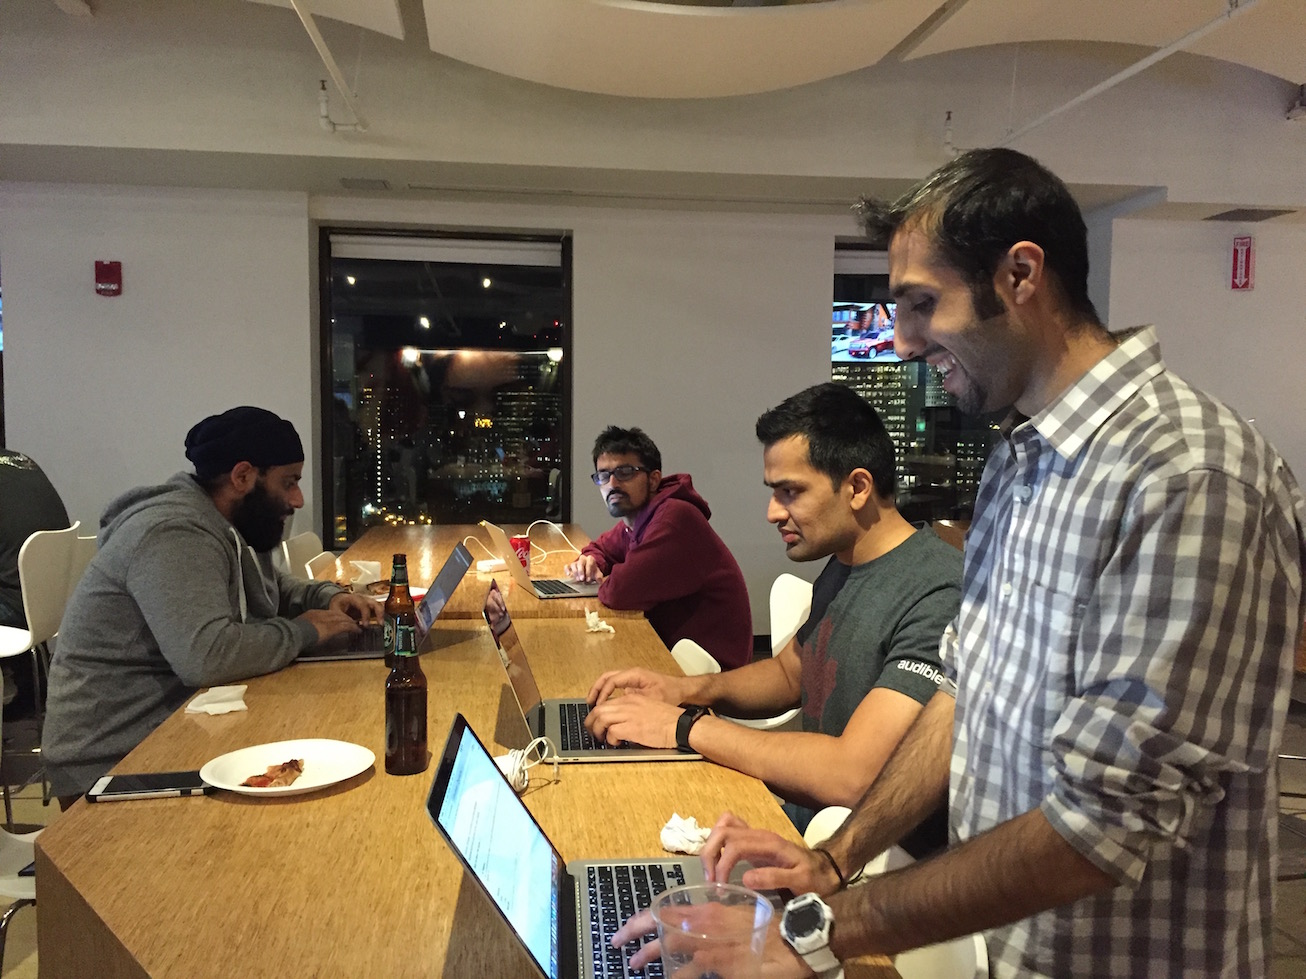 More Audible employees coding as a team